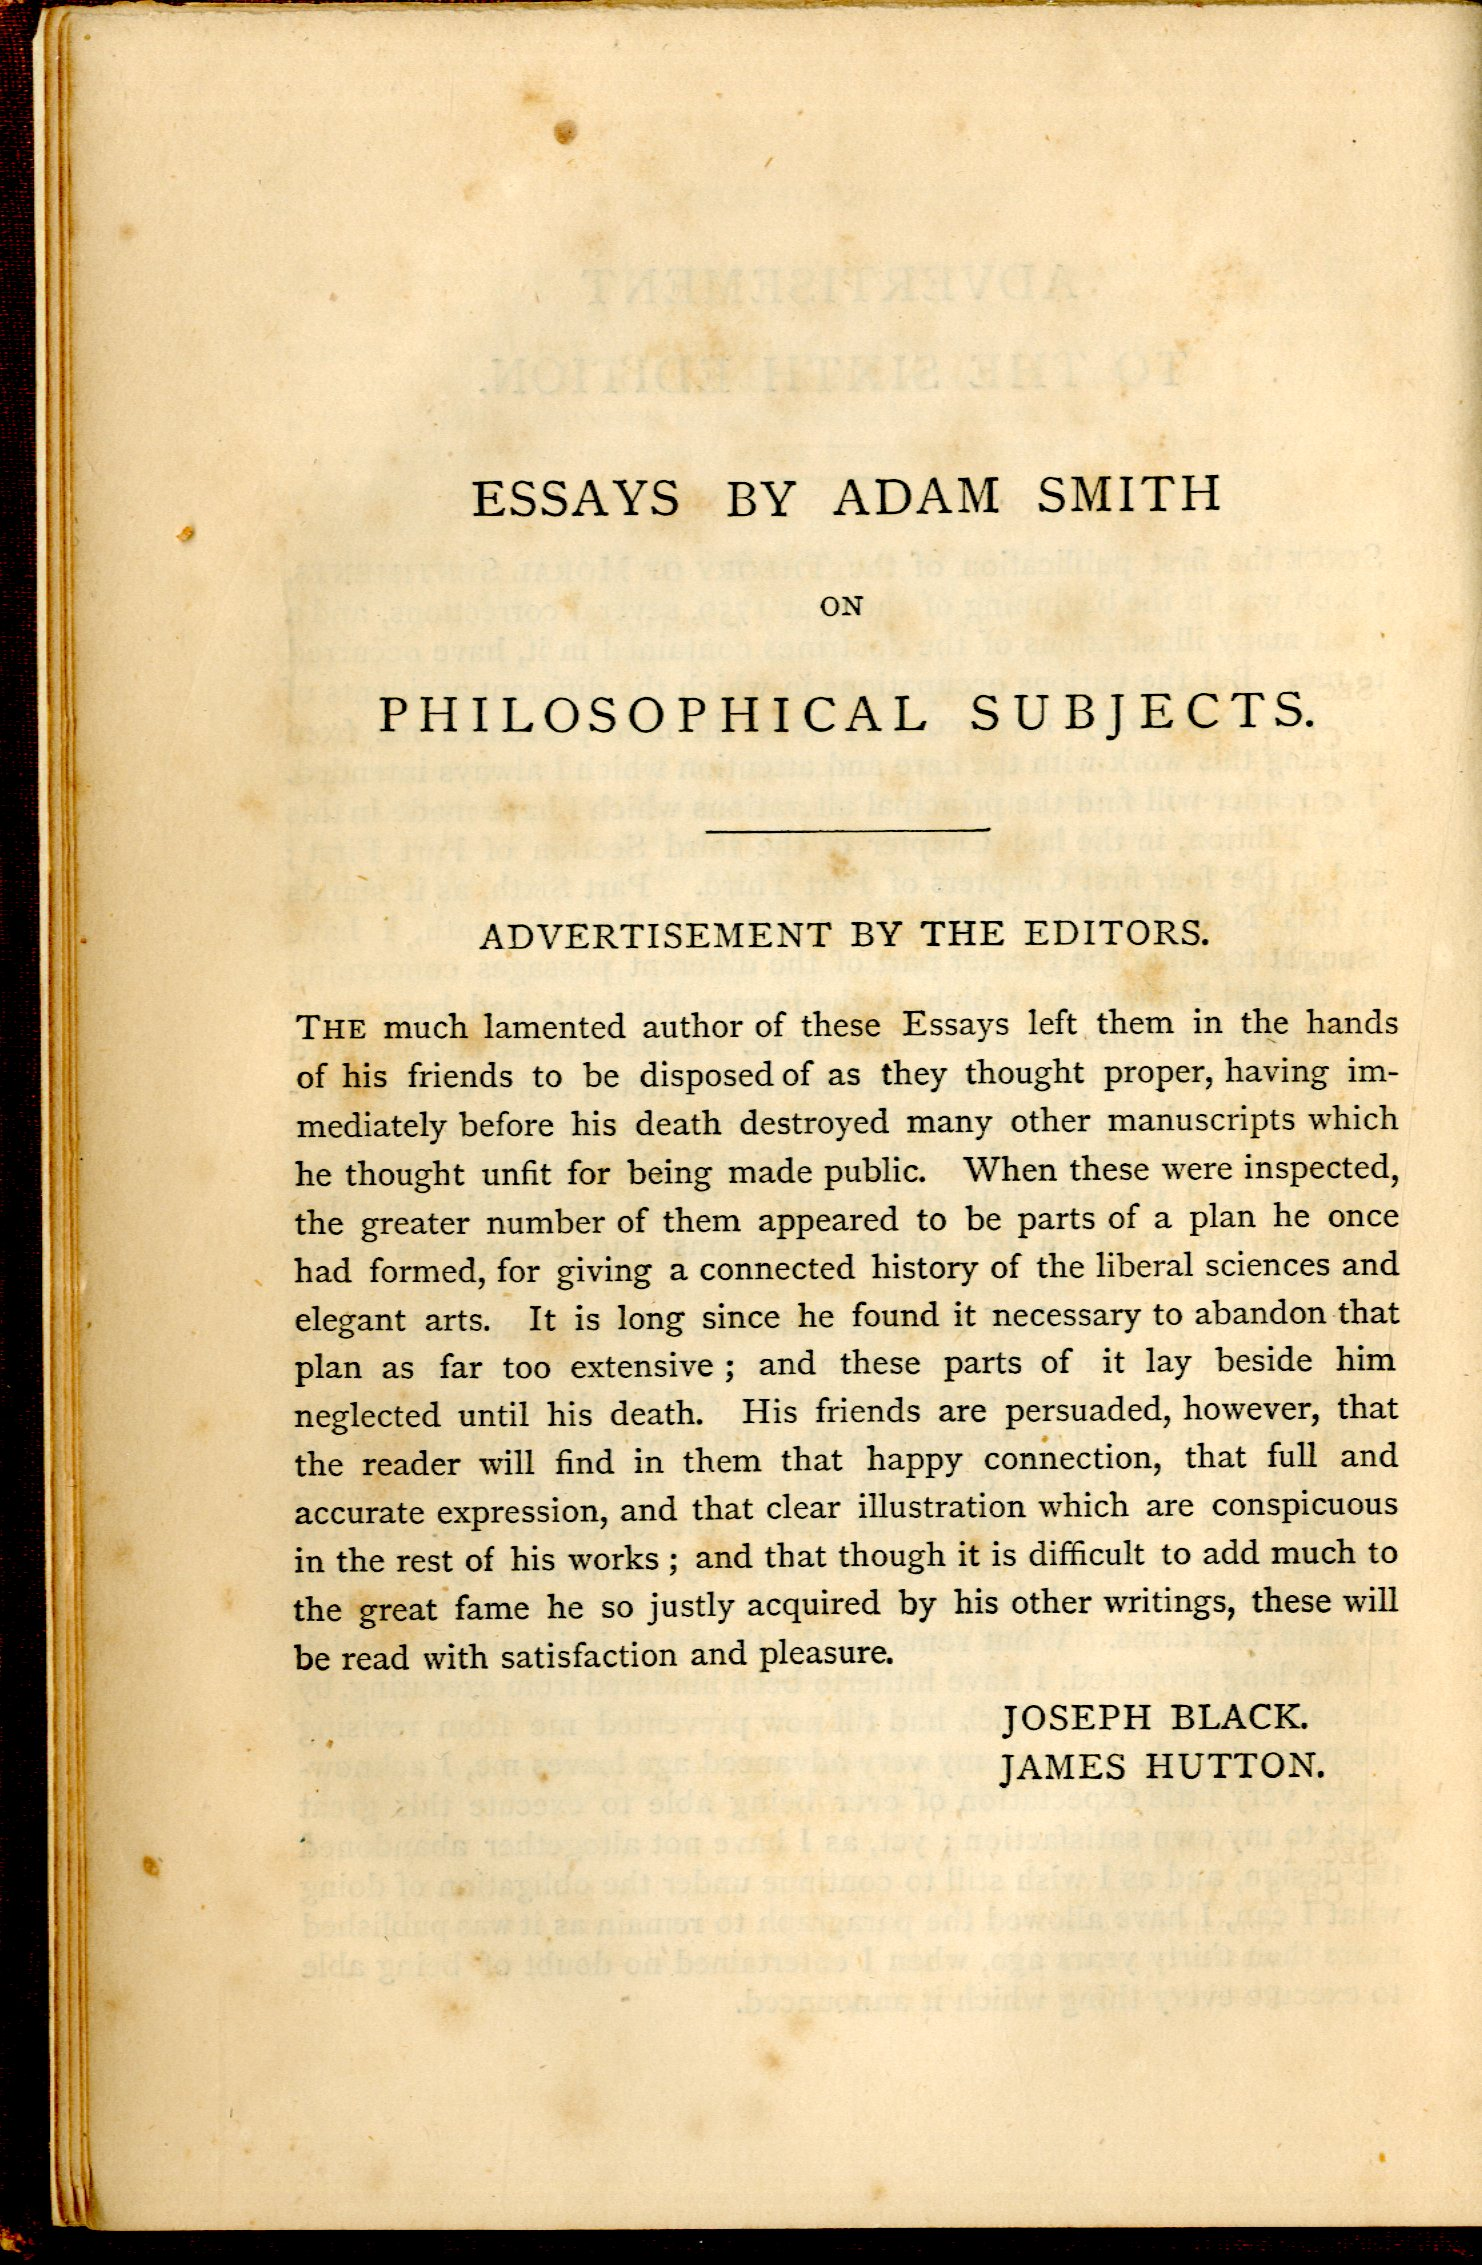 016 Essay Example Essays On Philosophical Best Subjects Smith Pdf Full